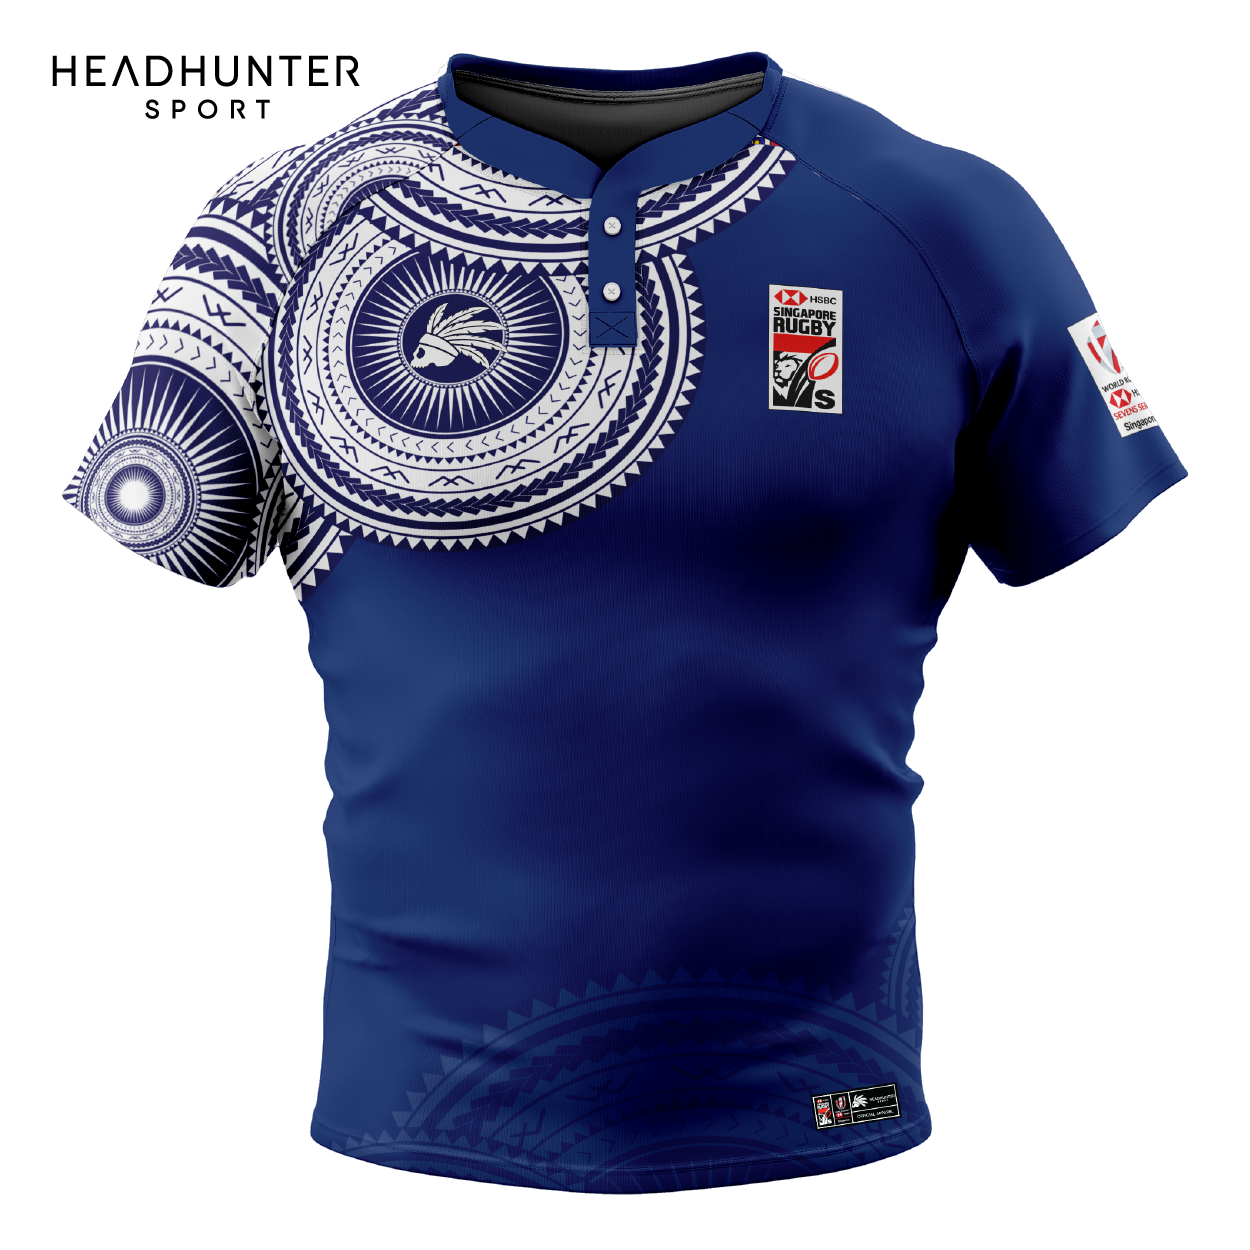 HSBC RUGBY 7S SERIES SINGAPORE 2019 MERCHANDISE SAMOA JERSEY